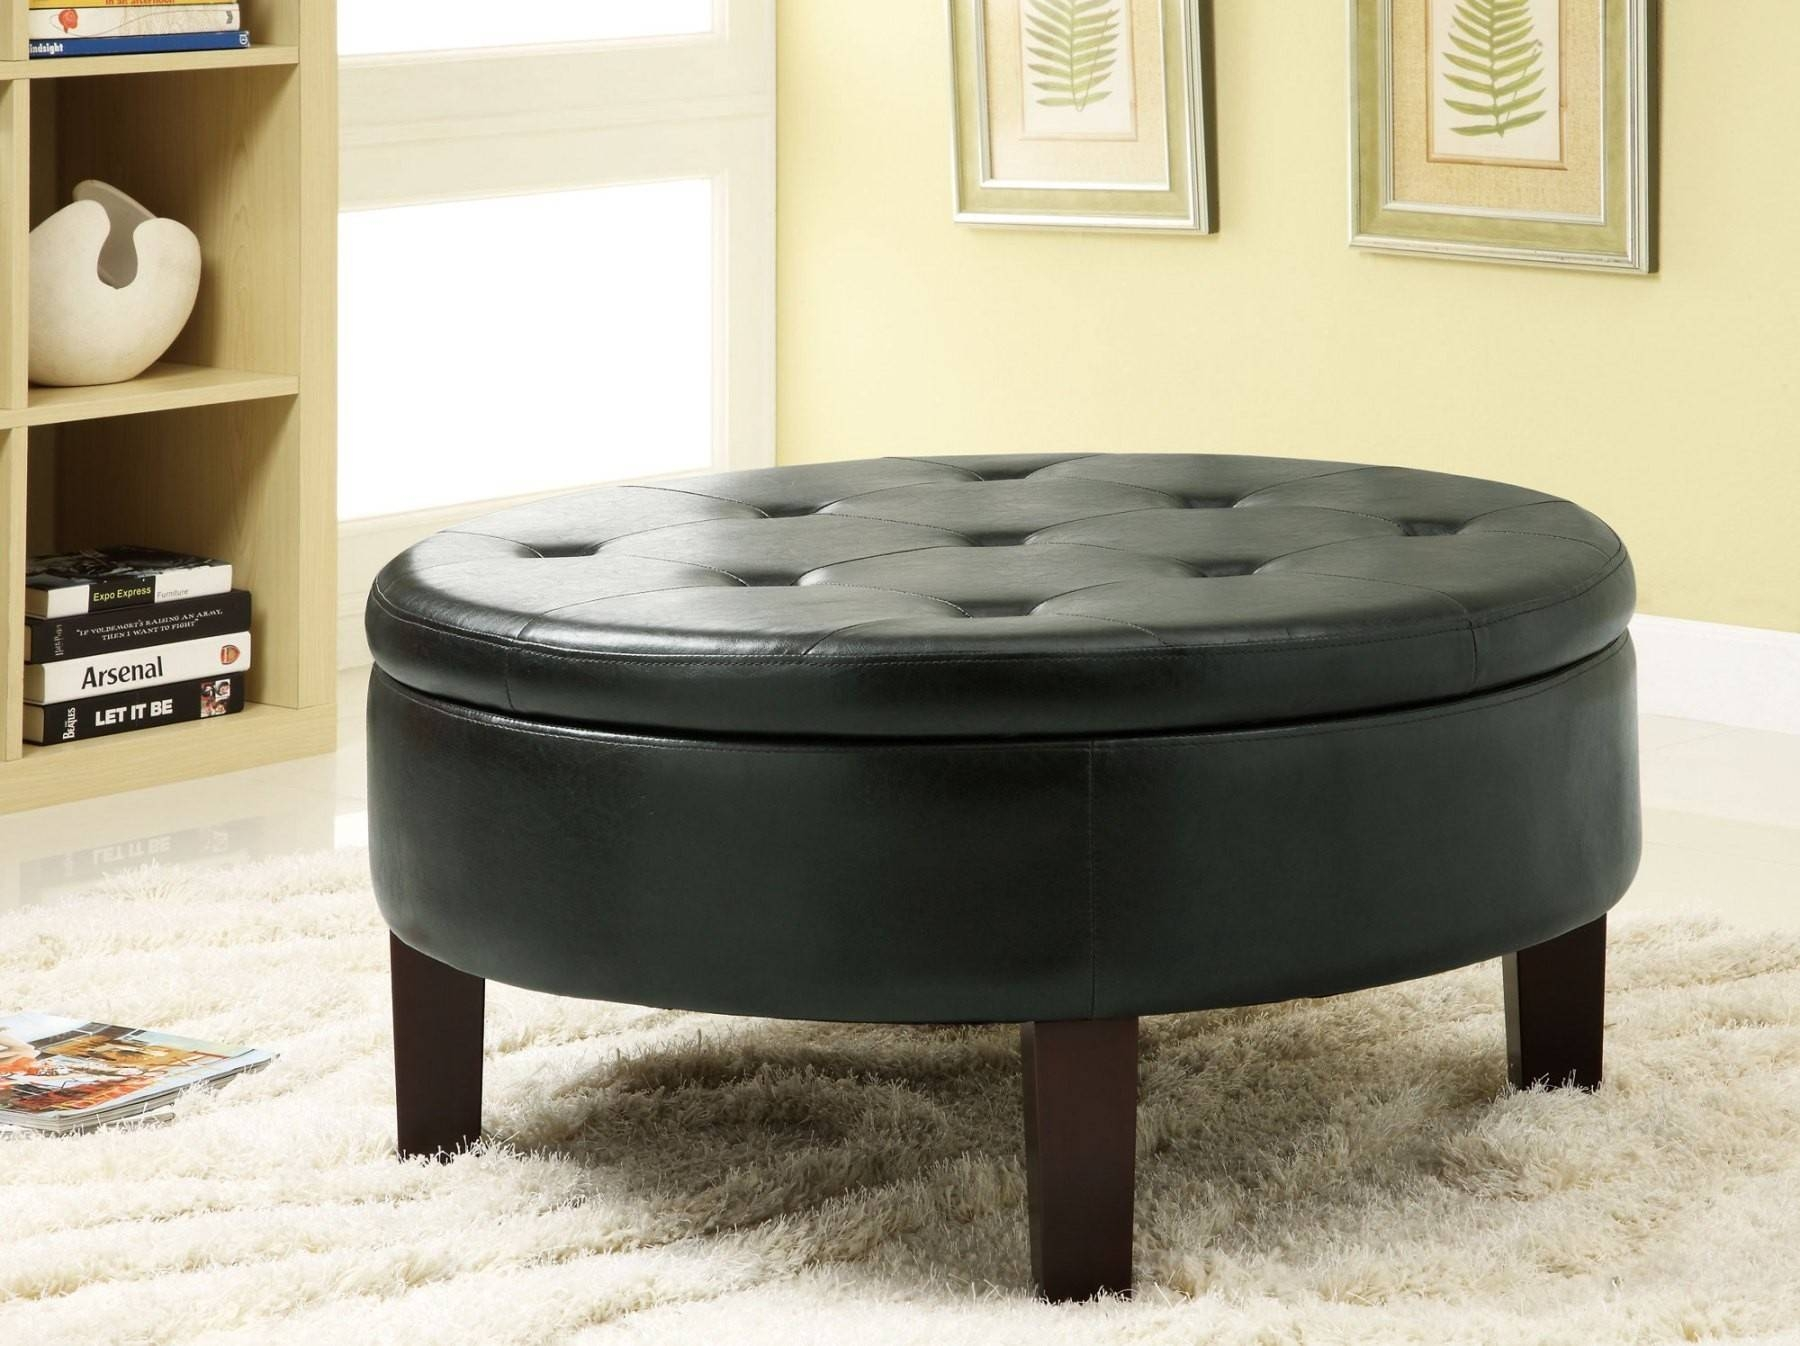 Furniture: Astounding Round Storage Coffee Table Design Ideas regarding Round Coffee Table Storages (Image 17 of 30)